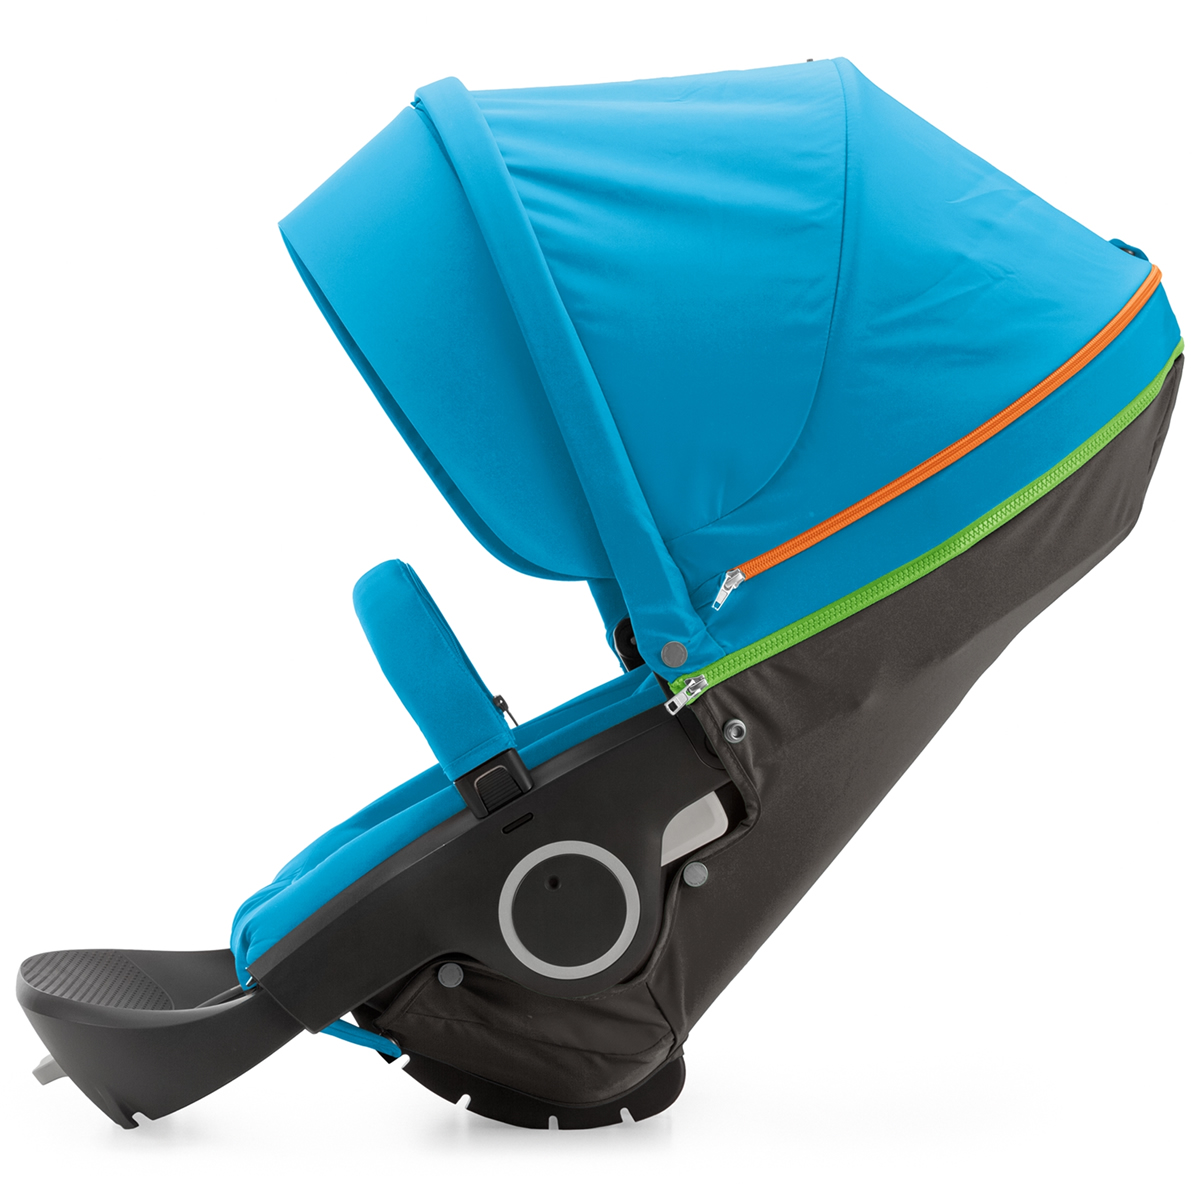 Stokke Seat in Urban Blue